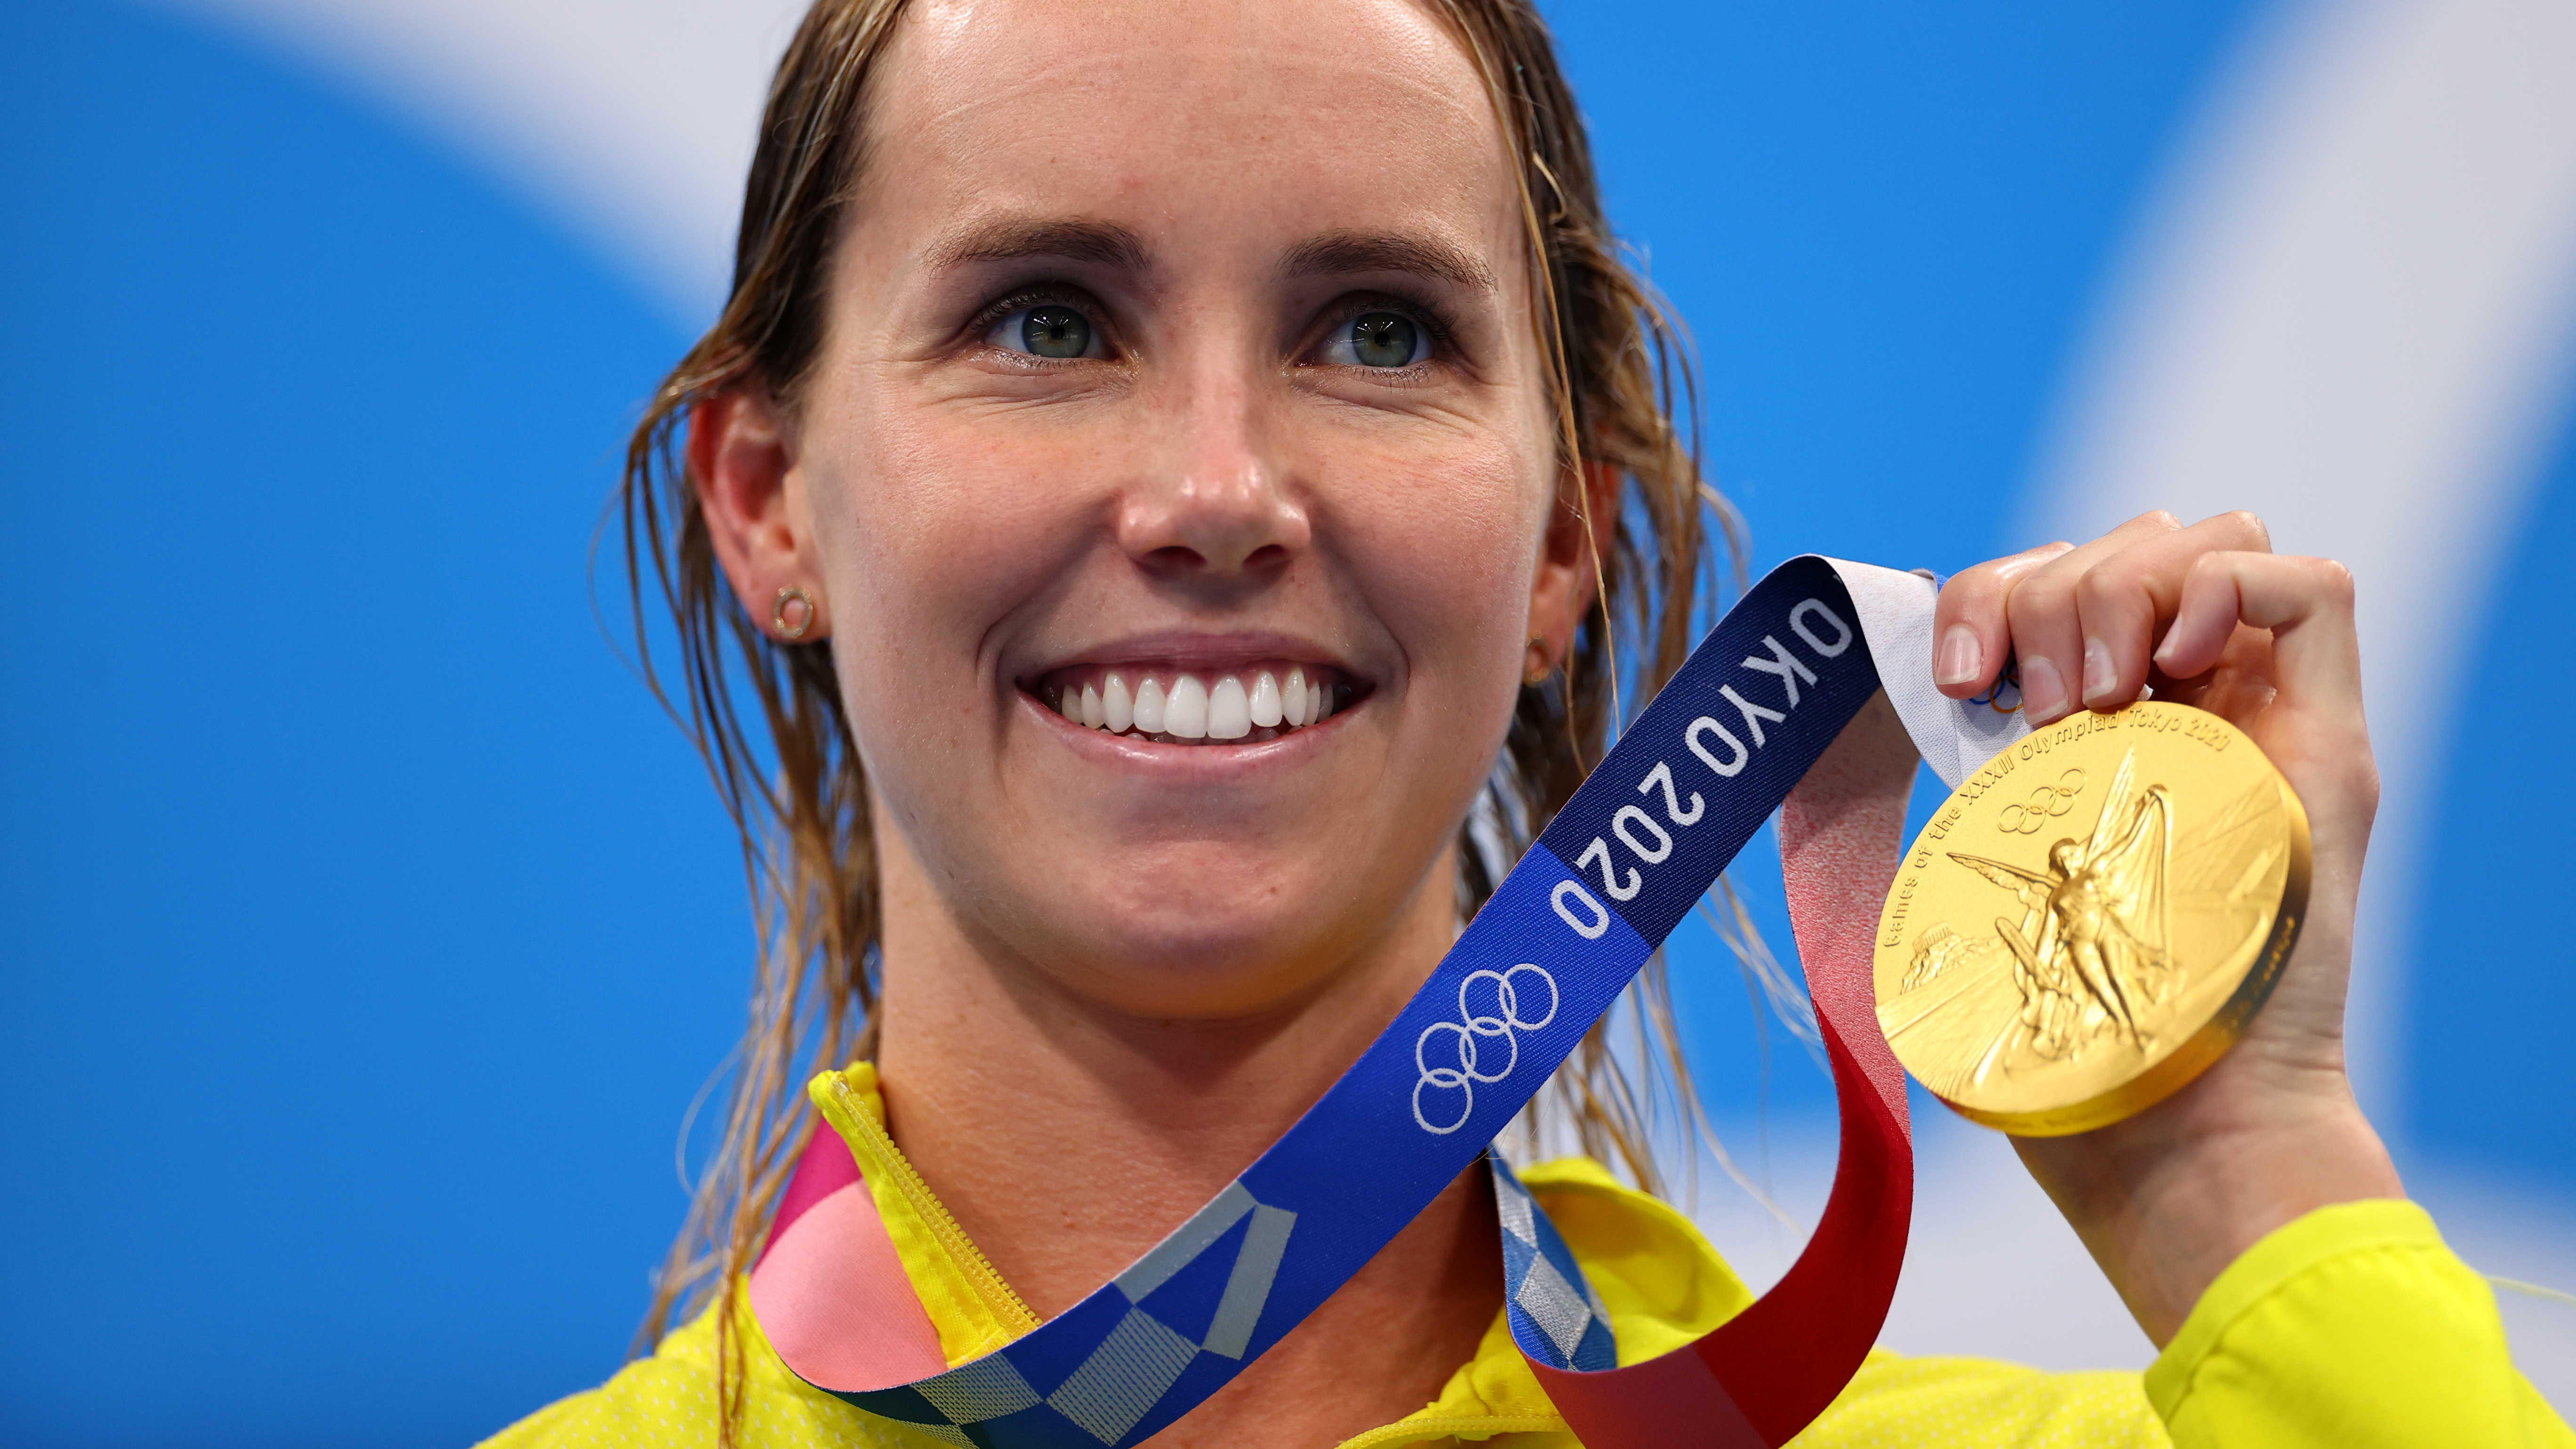 Tokyo 2020 Olympics - Swimming - Women's 50m Freestyle - Medal Ceremony - Tokyo Aquatics Centre - Tokyo, Japan - August 1, 2021. Emma McKeon of Australia with her gold medal REUTERS/Marko Djurica